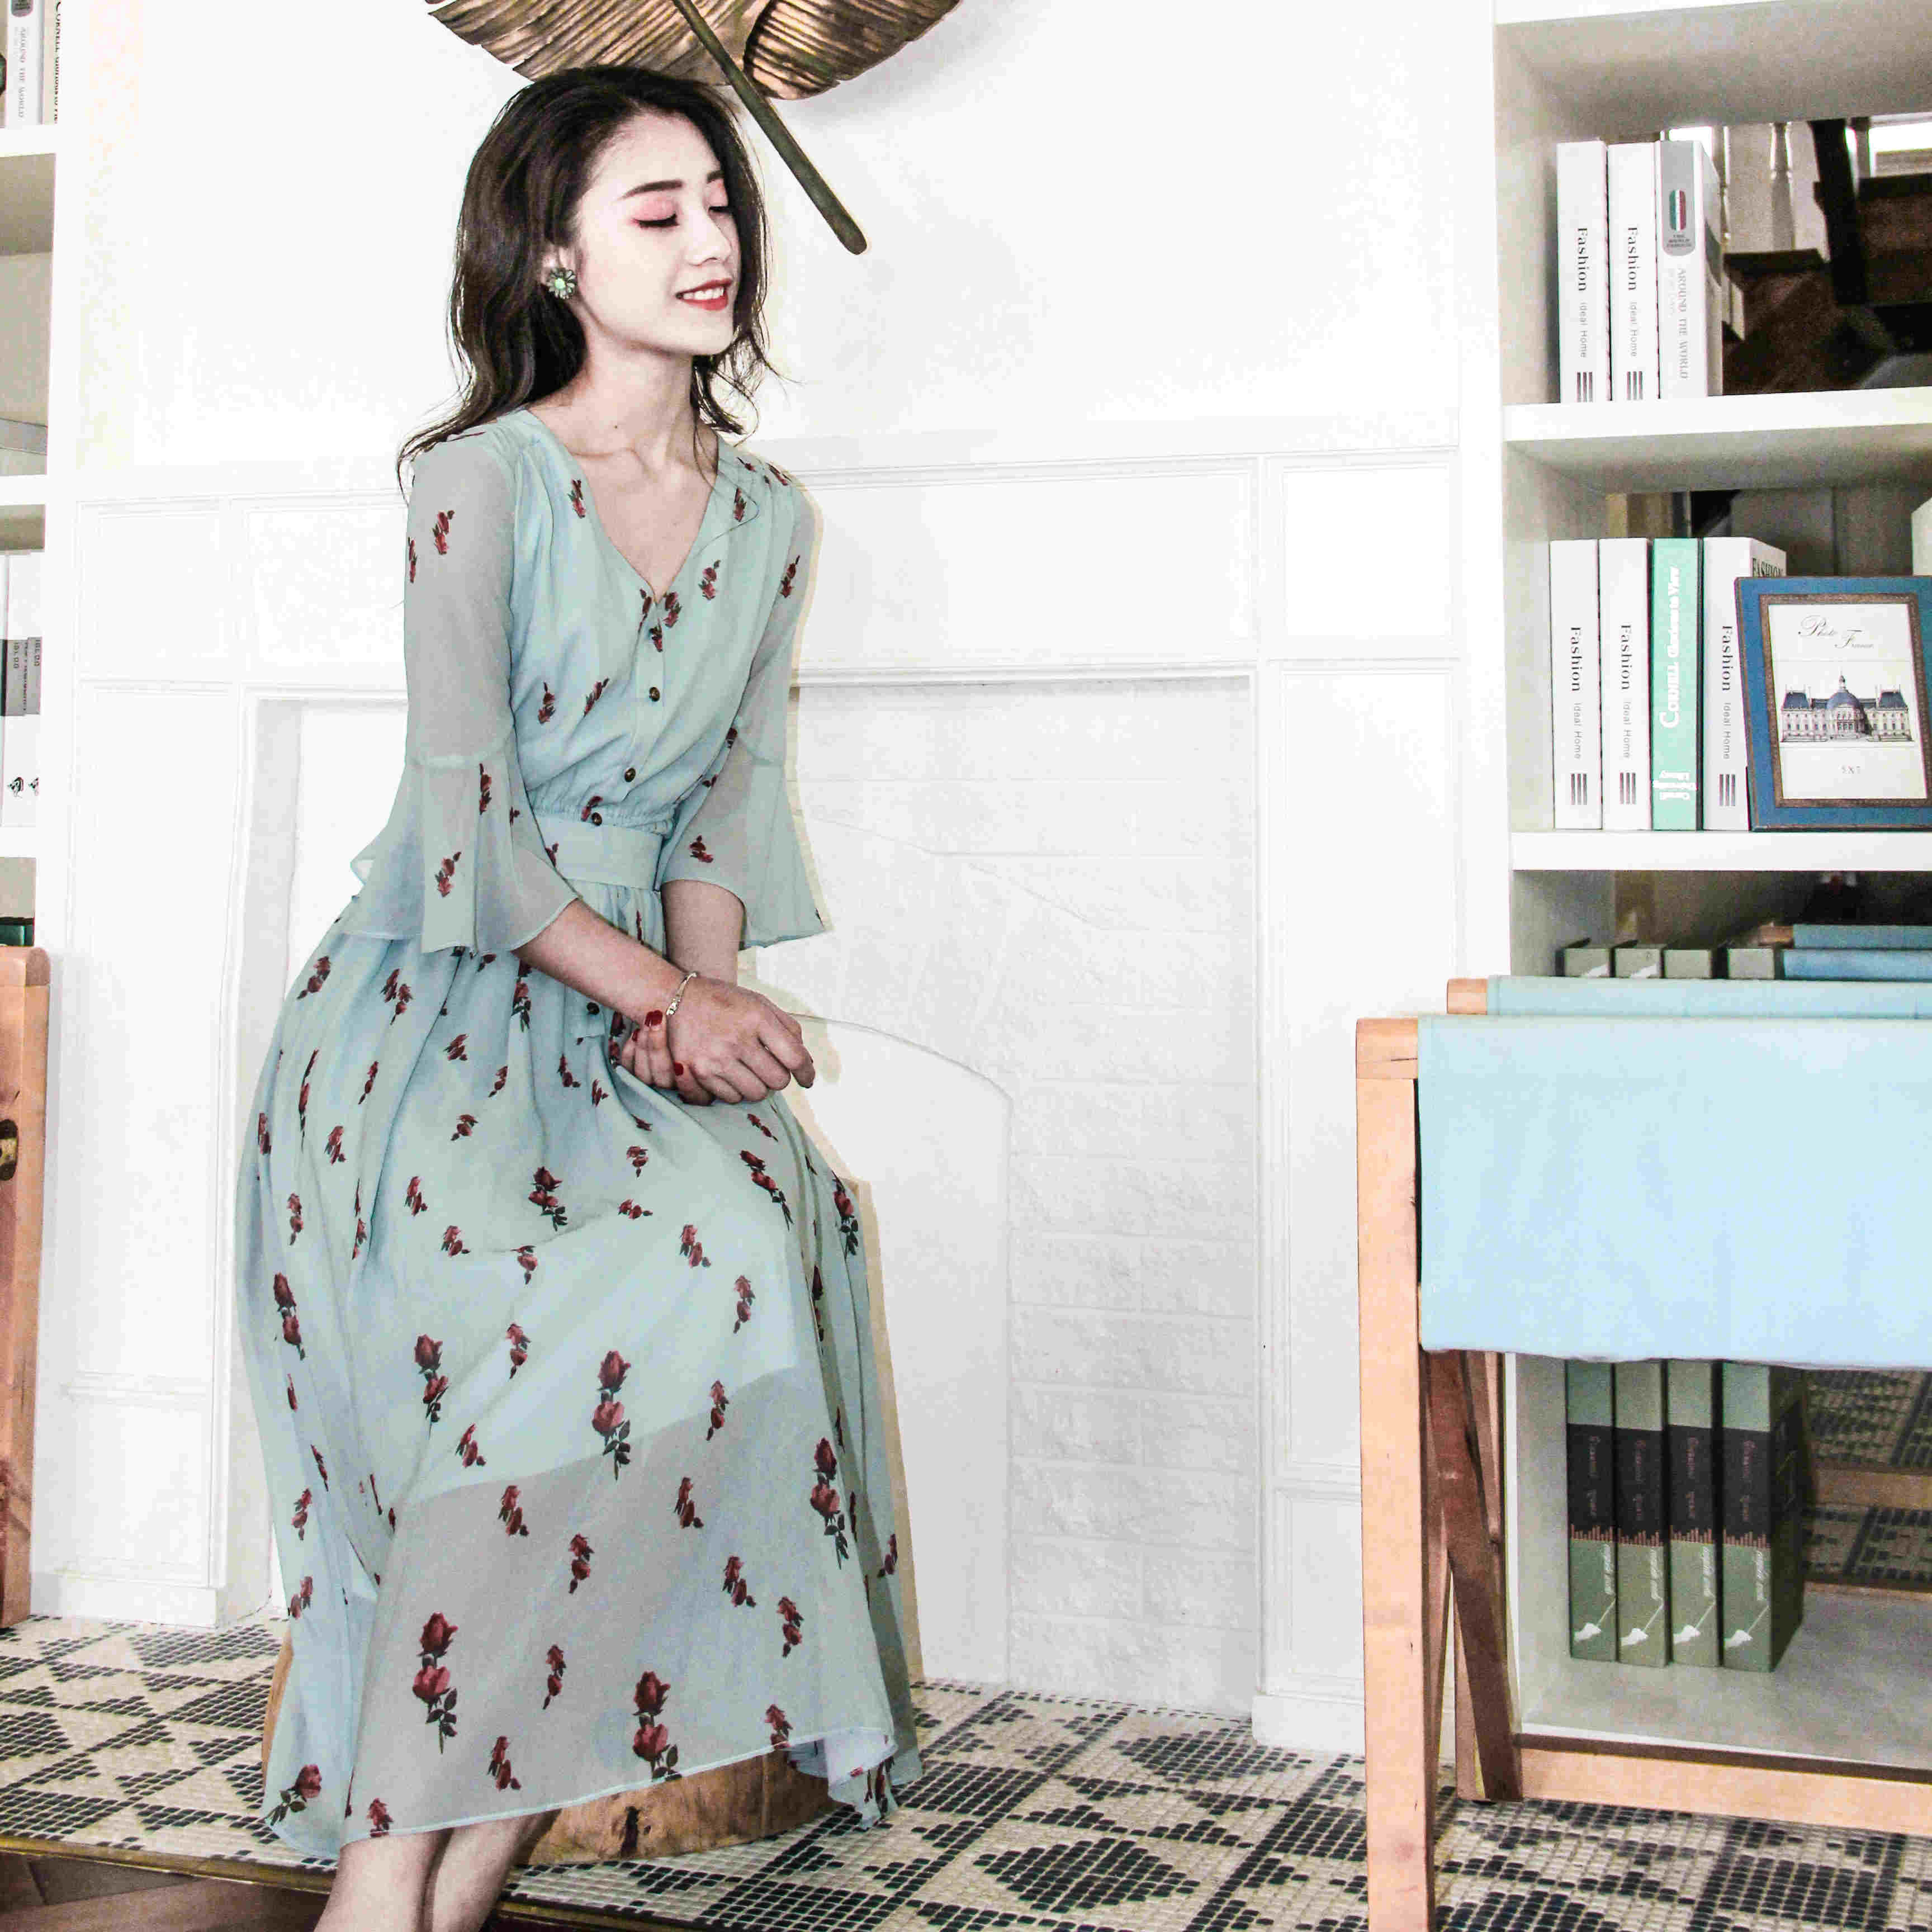 2017 spring new women dress korean vintage chiffon floral print dresses elastic waist female vestidos boho elegant shirt dress